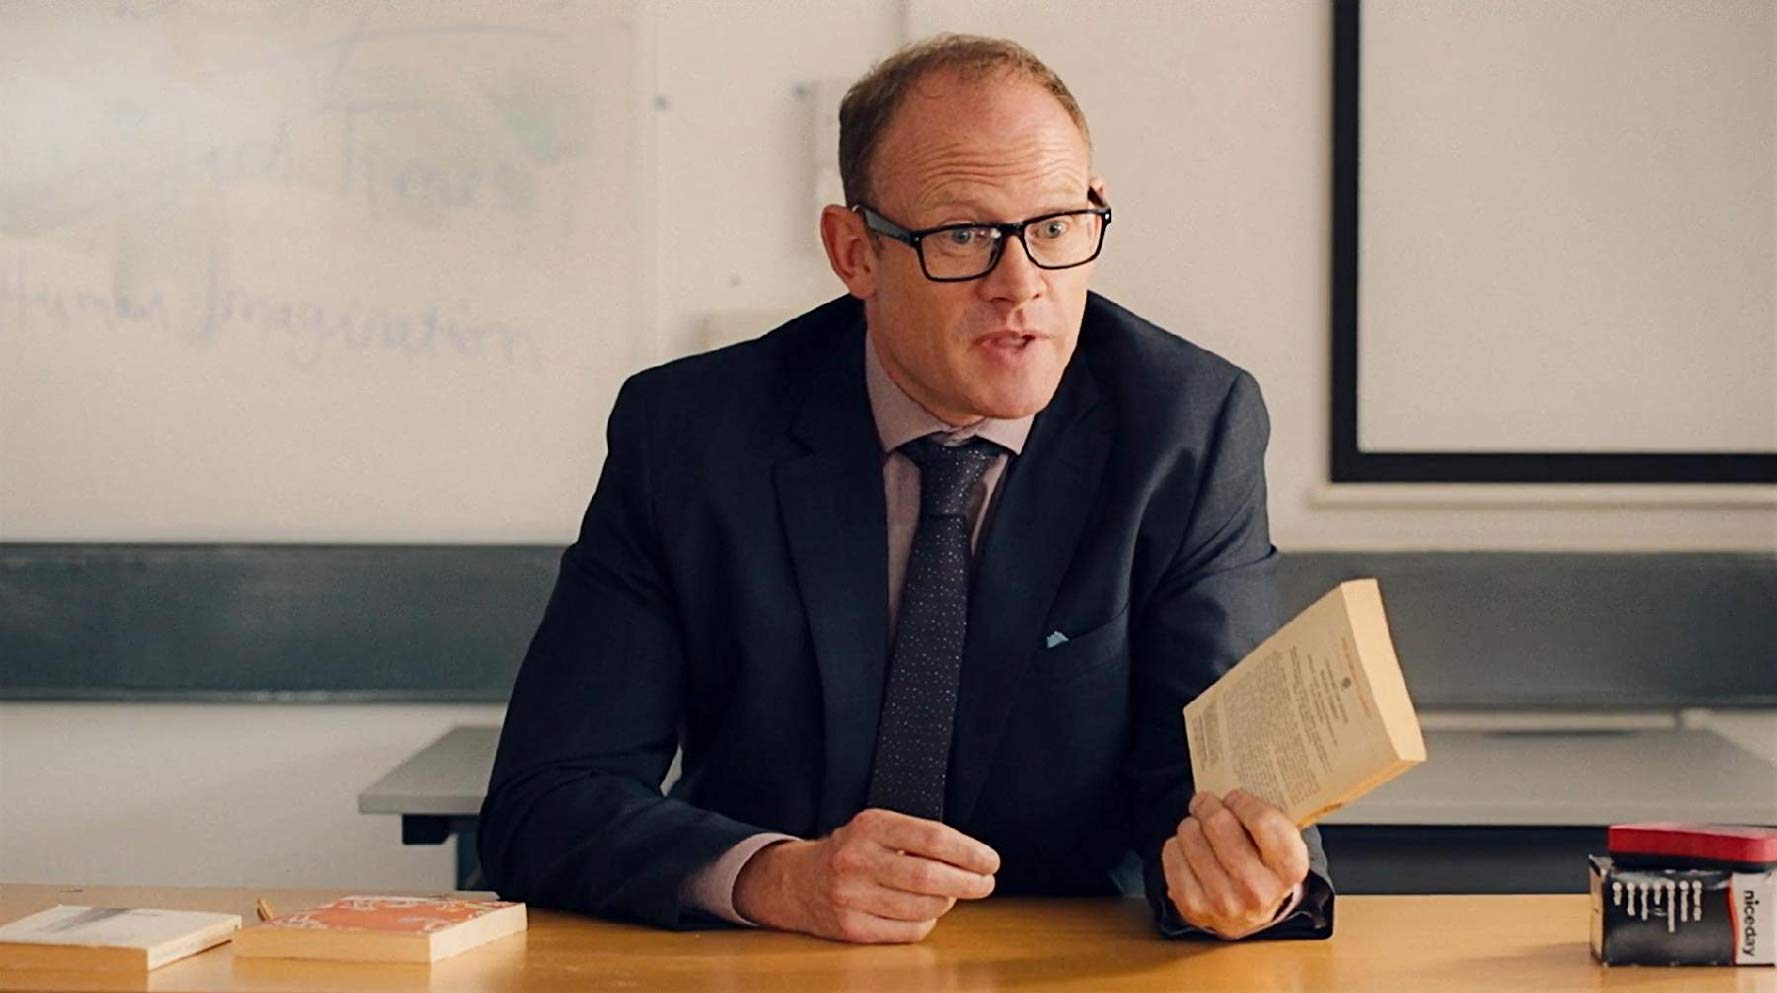 Robert Hands as Mr Gale, a milquetoast schoolteacher who snaps and tortures pupils in The Lesson (2015)